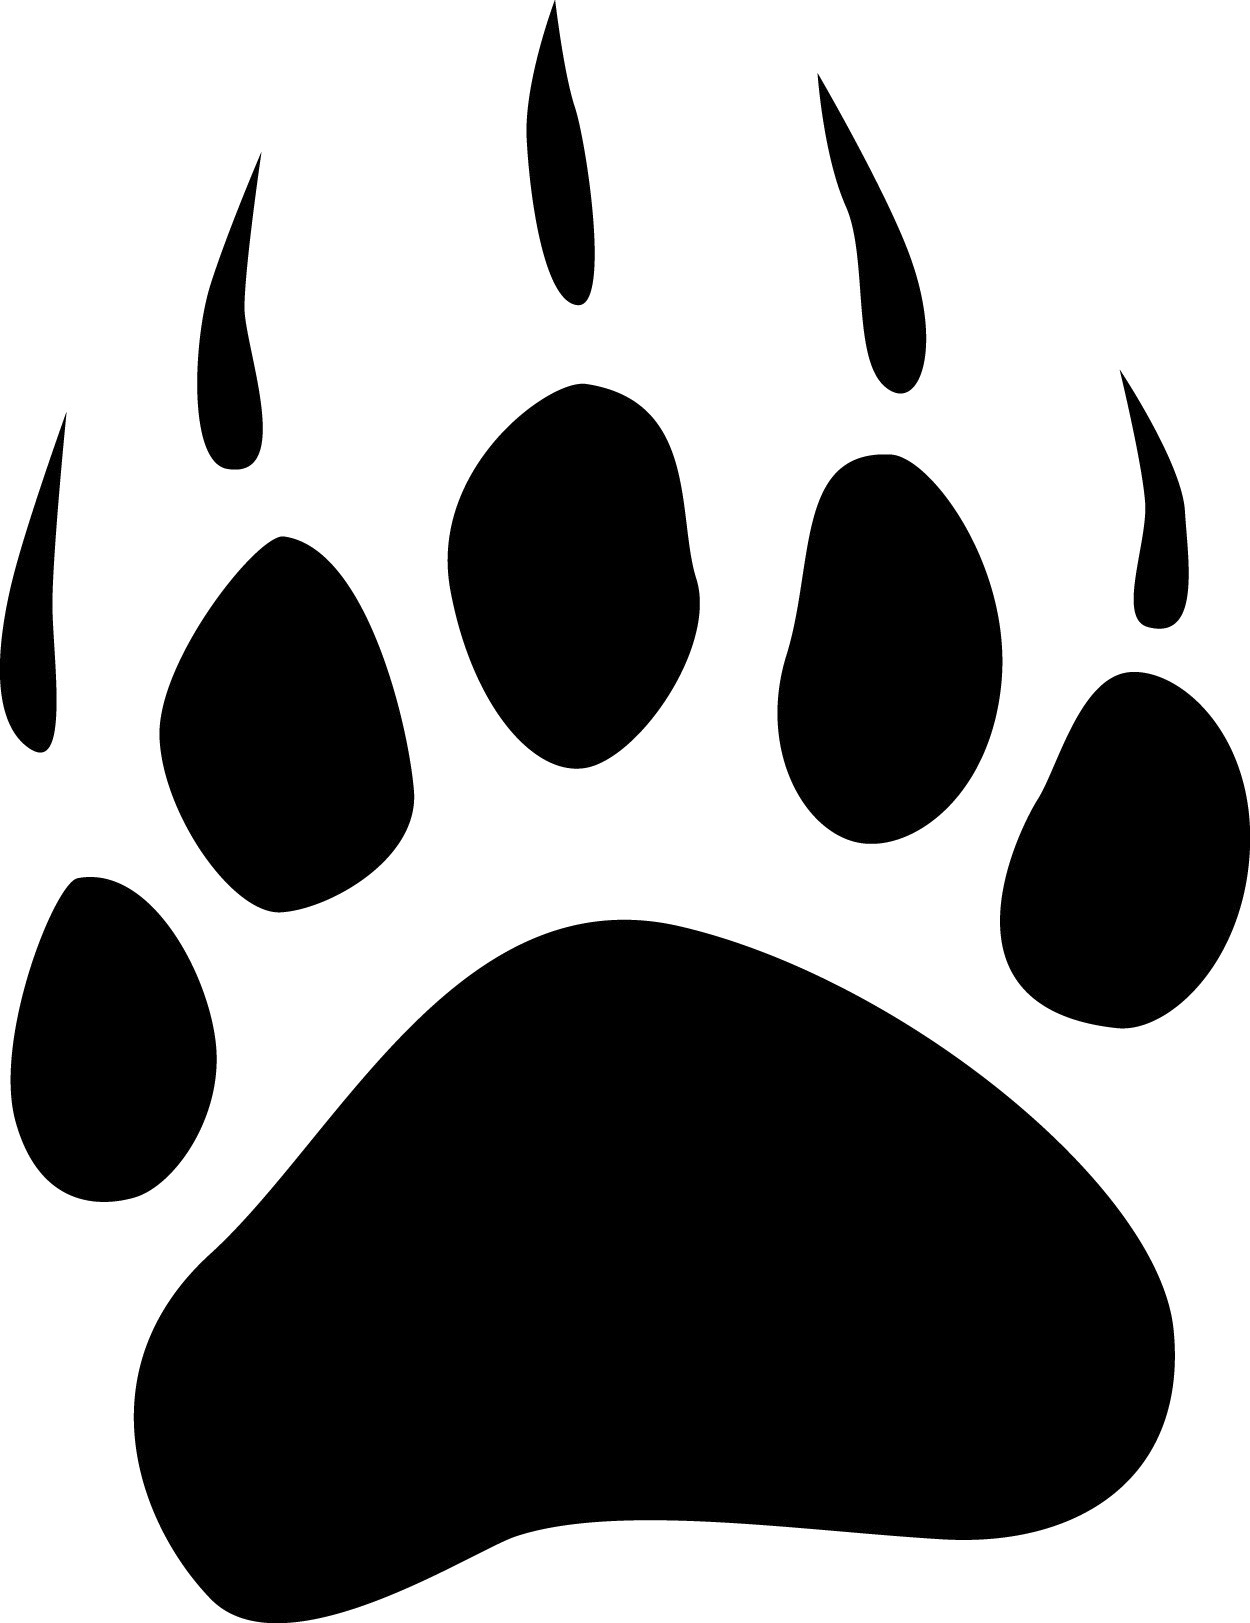 Tiger Paw Clipart Black And White